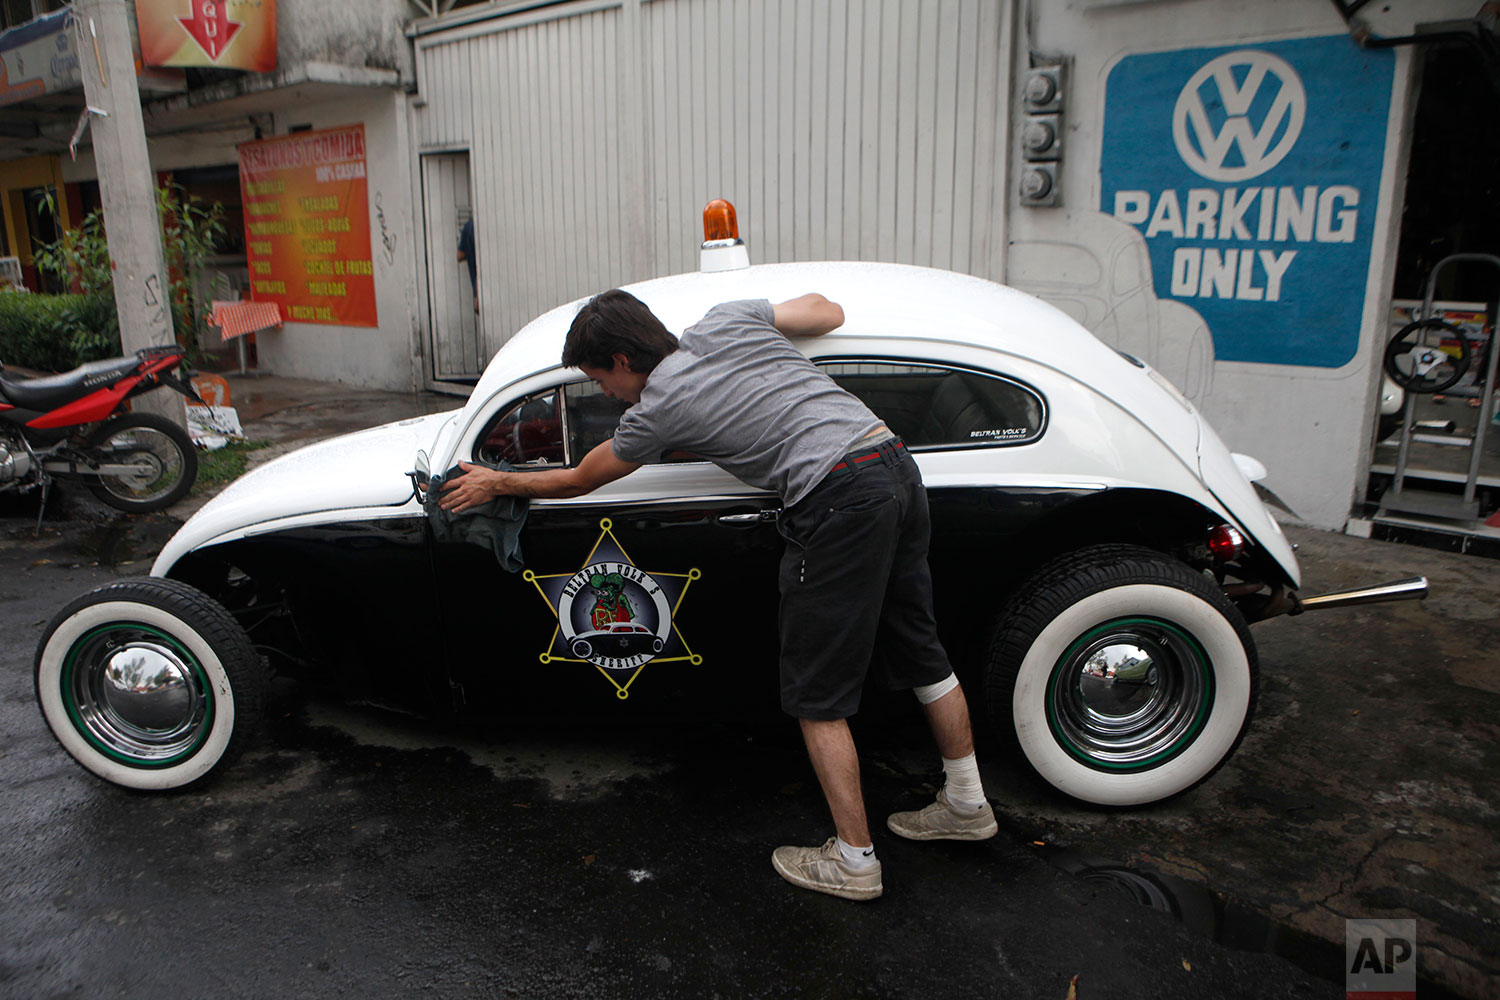 Dany Beltran polishes his 1956 Volkswagen beetle, named the Beltran Volk's Sheriff, outside of his family's Volkswagen repair and service shop in Mexico City, Aug. 7, 2015. (AP Photo/Sofia Jaramillo)